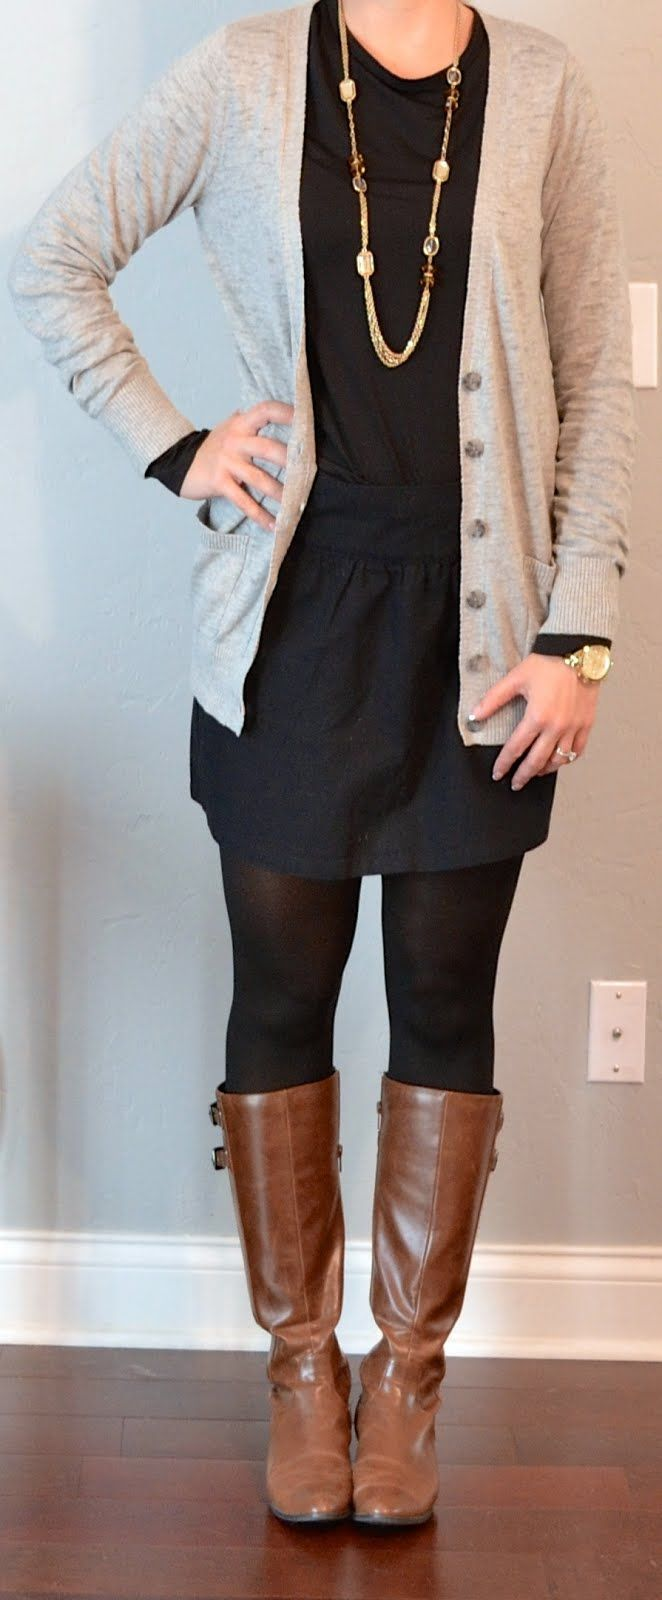 143 best images about Teacher Style on Pinterest | Teaching ...